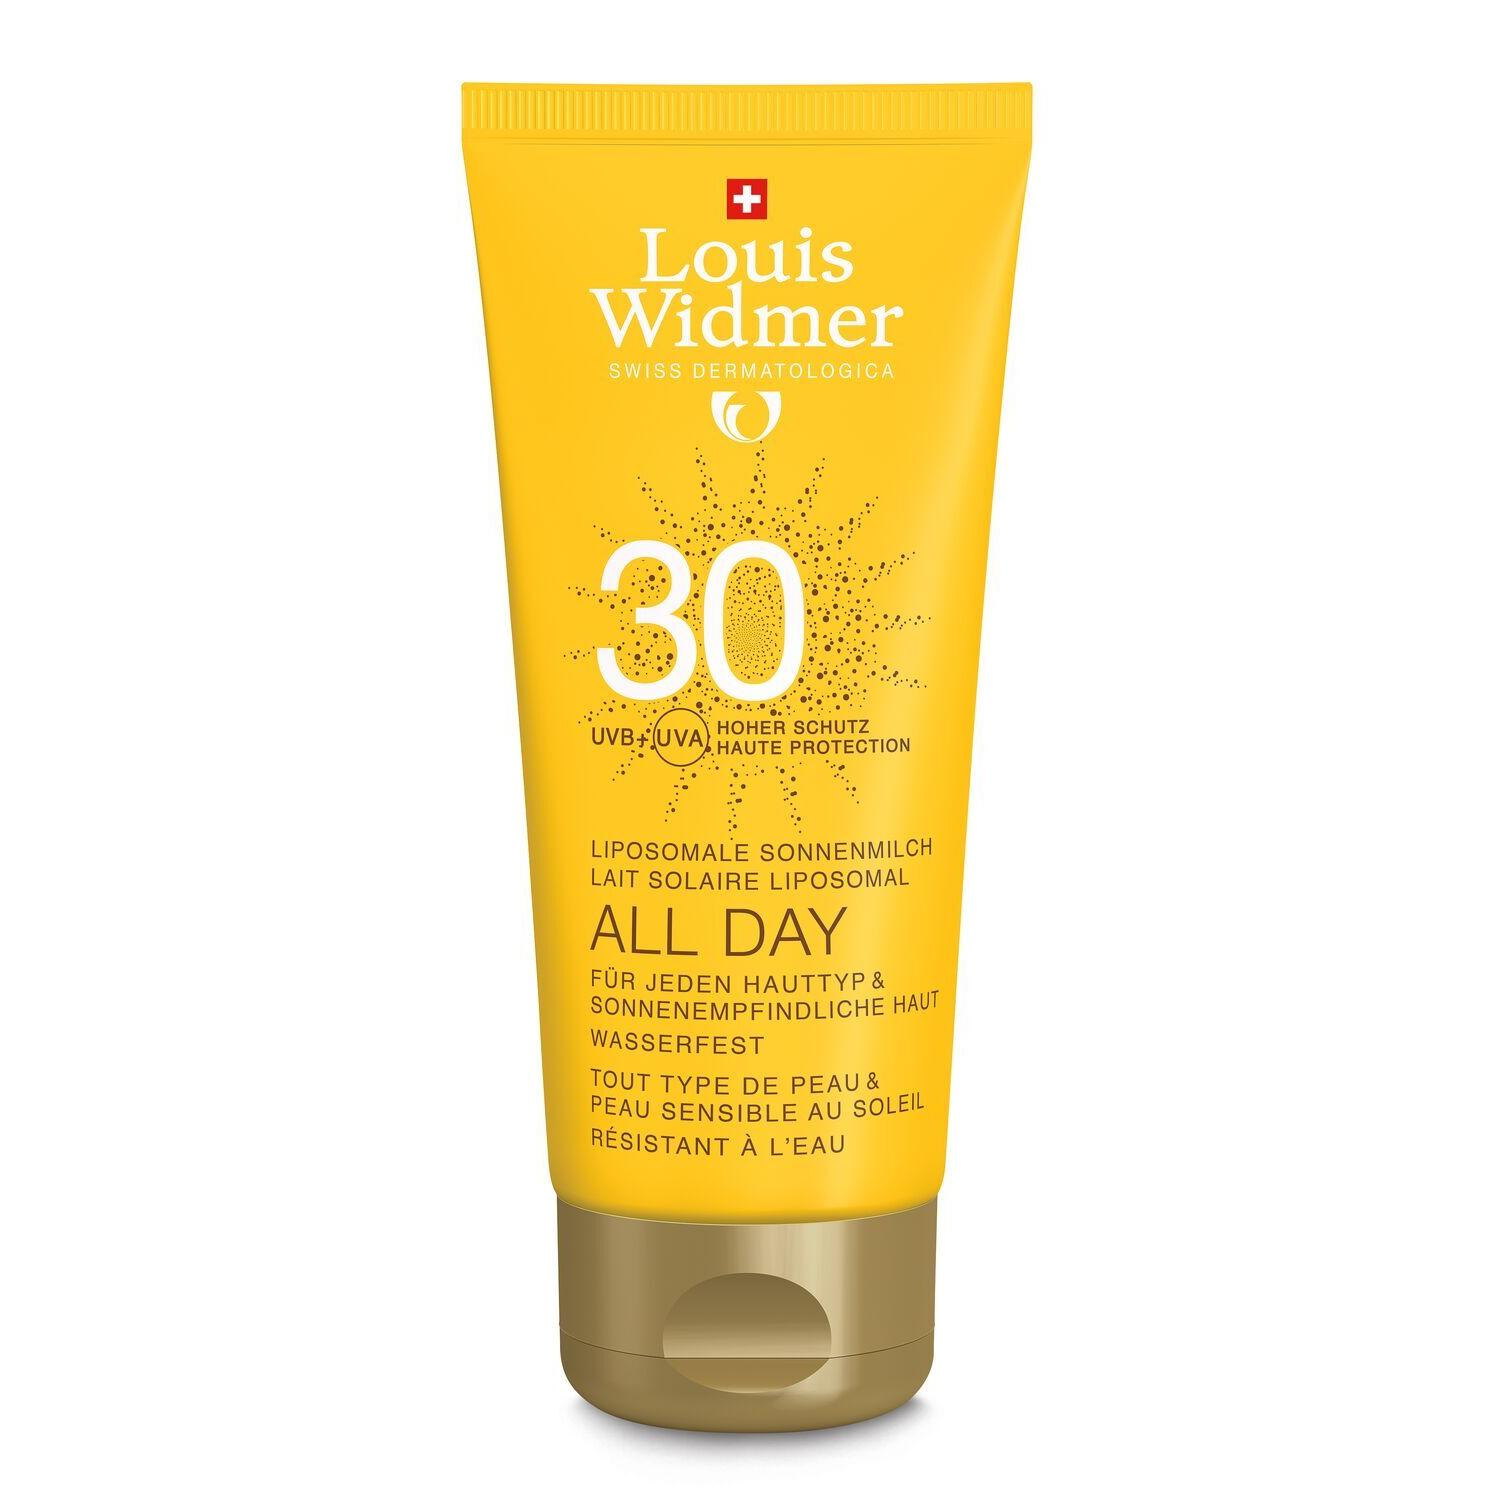 Image of Louis Widmer All day SPF30 parfumé